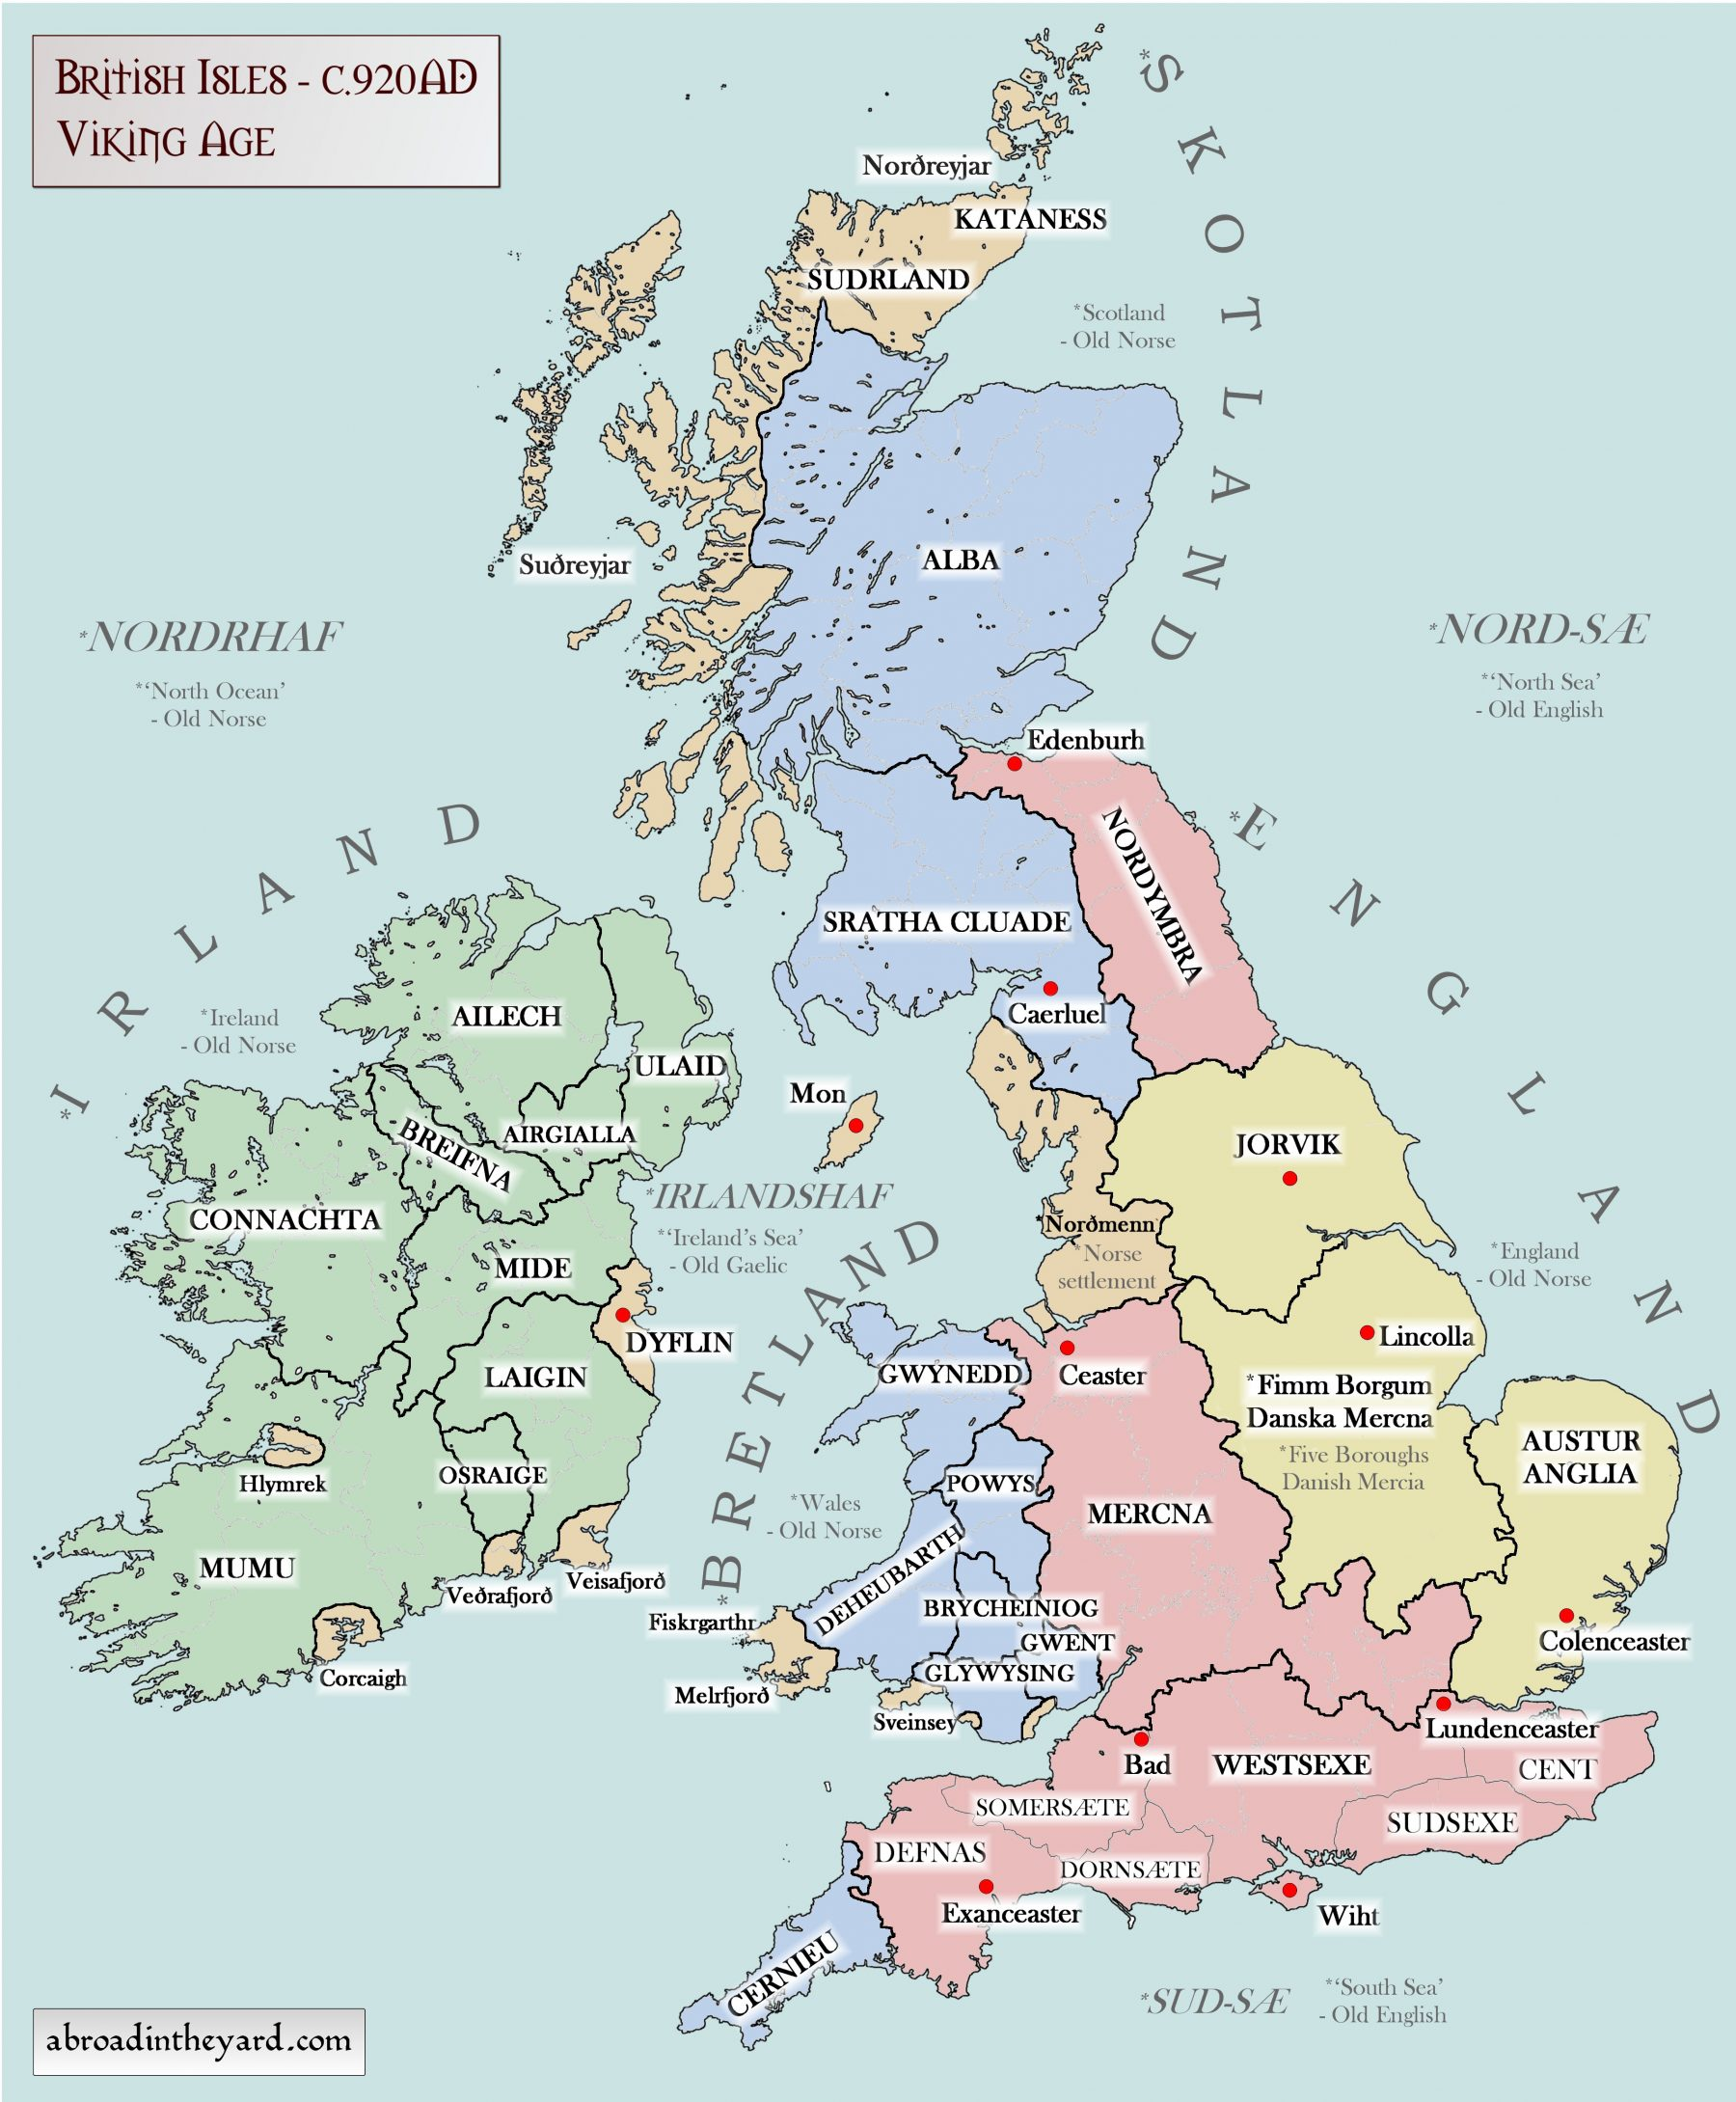 British-Isles-5-Viking-final-JPG-e1462557739307